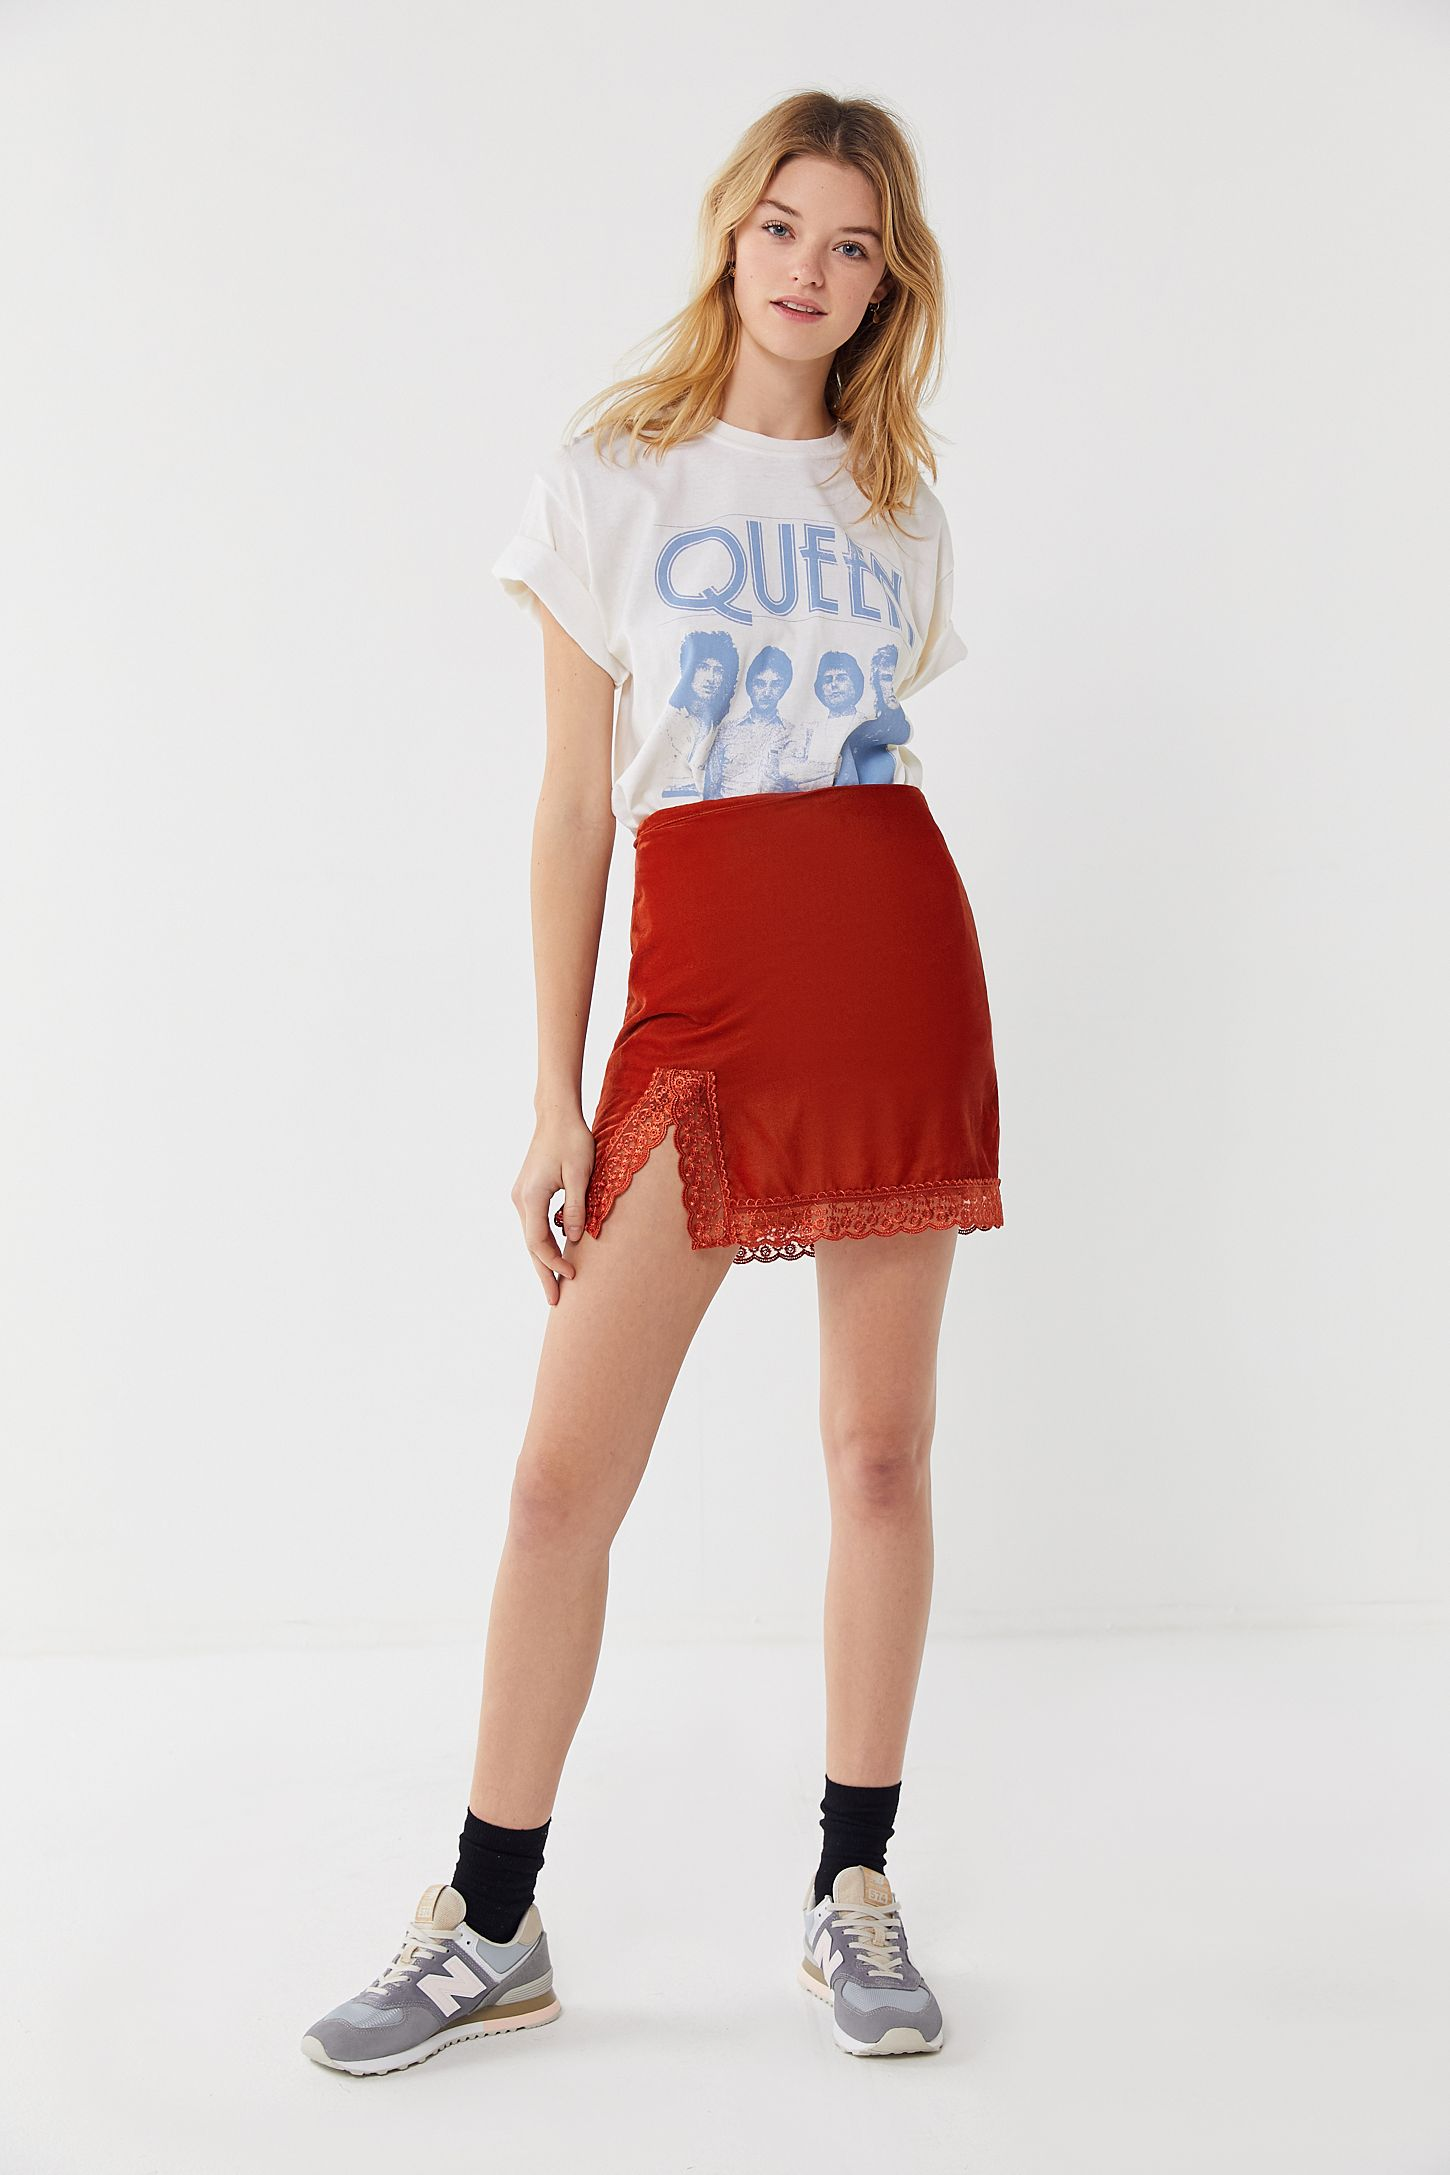 b427592e Queen Band Tee | Urban Outfitters